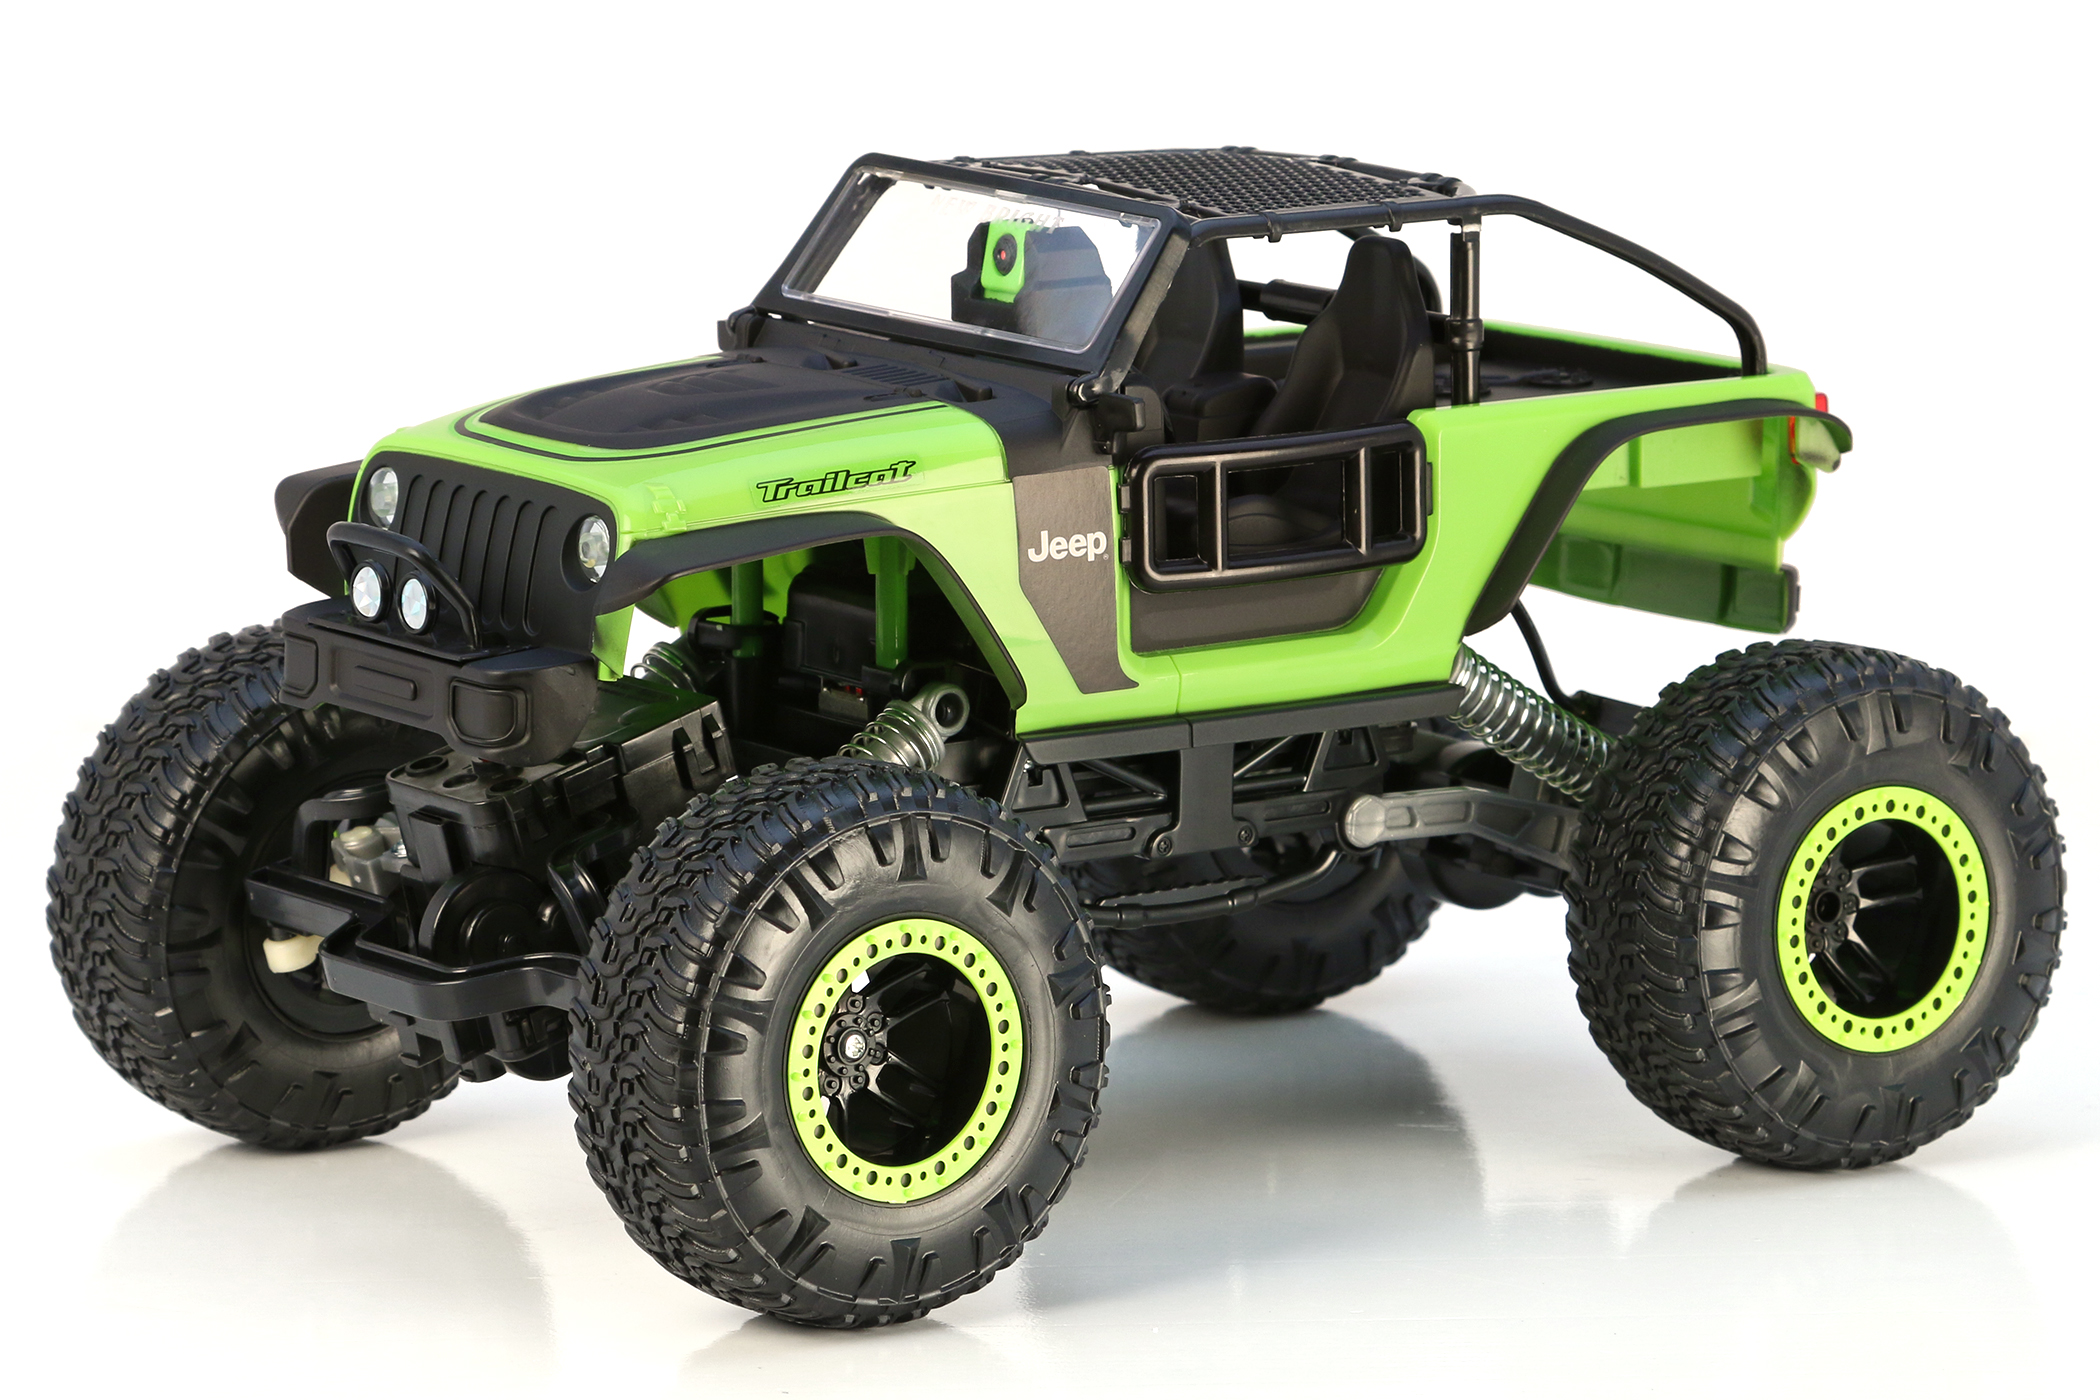 r/c dashcam jeep� trailcat - green   new bright industrial co